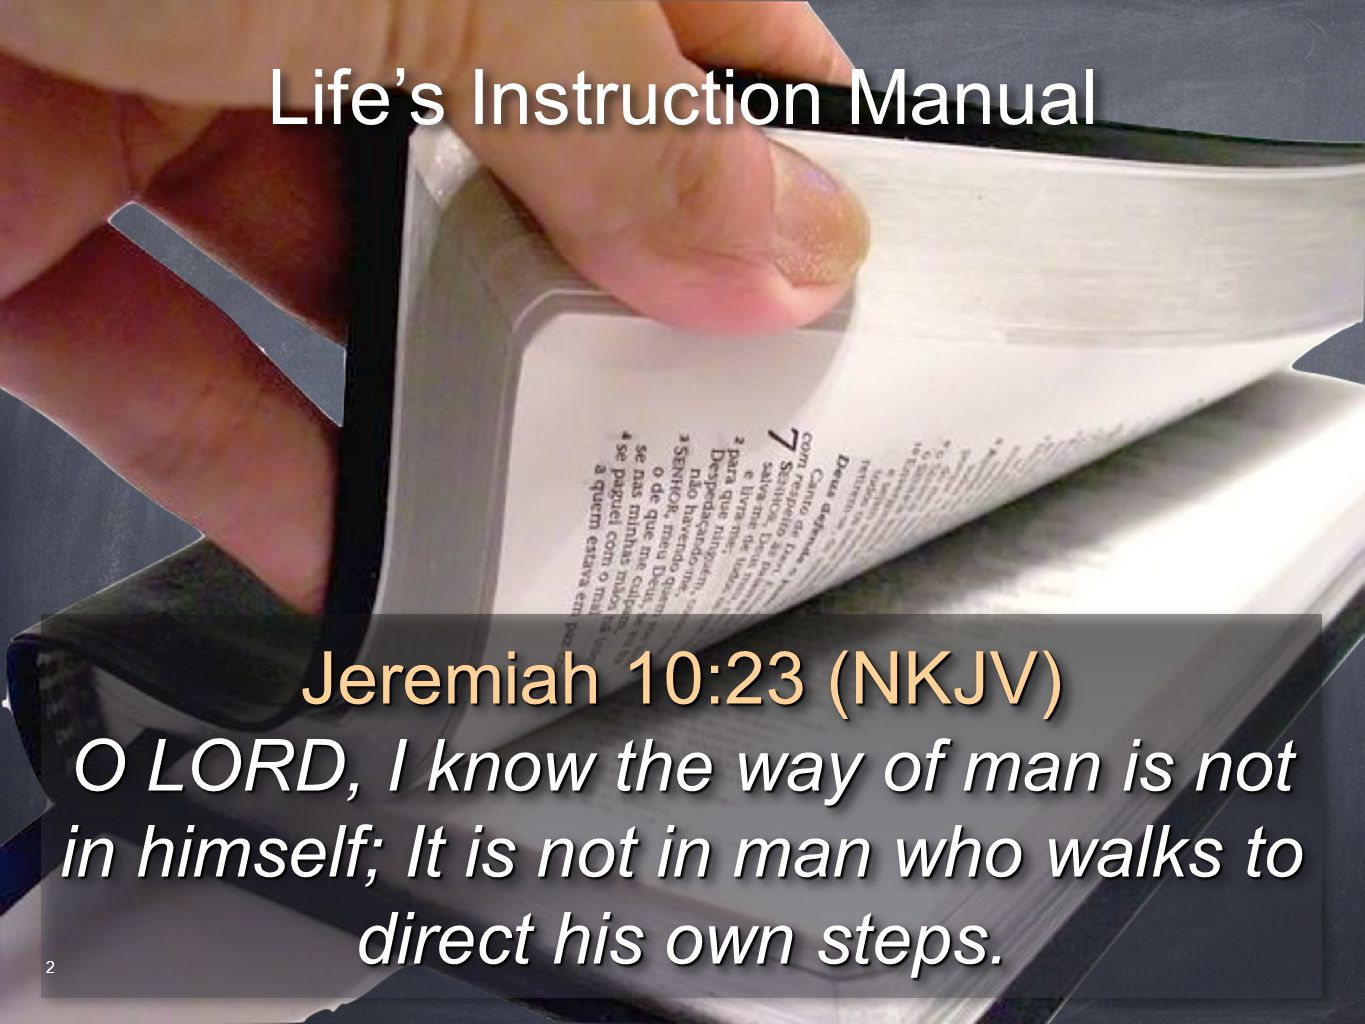 Life's Instruction Manual